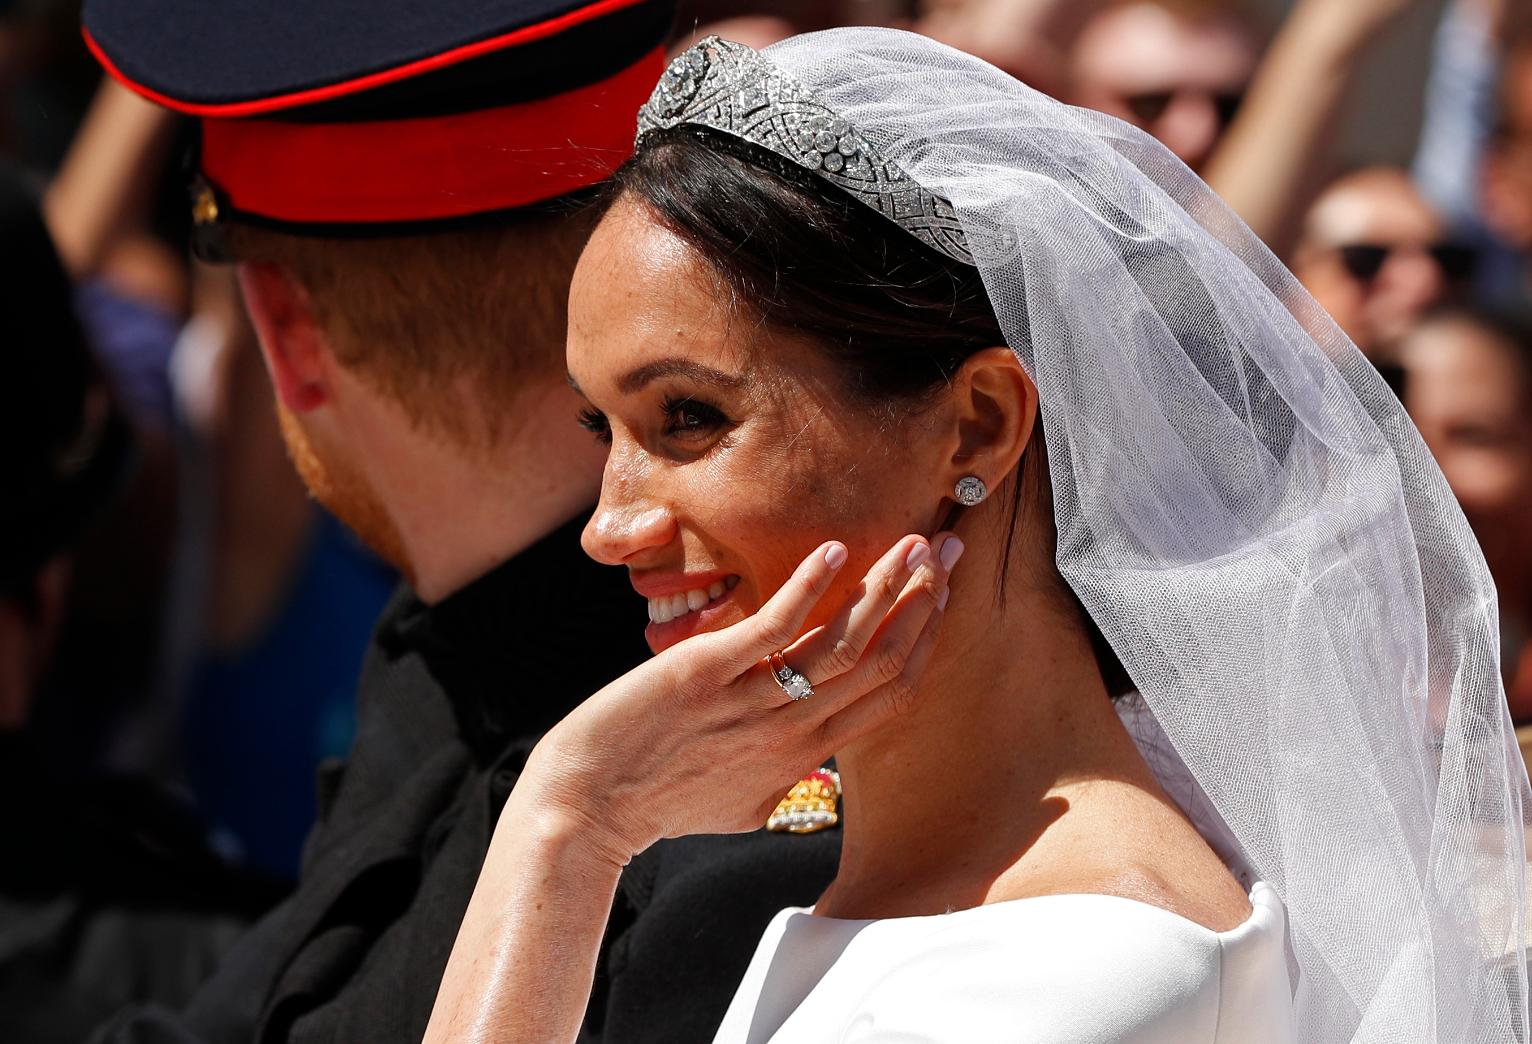 The Latest Markle S Tiara Once Belonged To Queen Mary